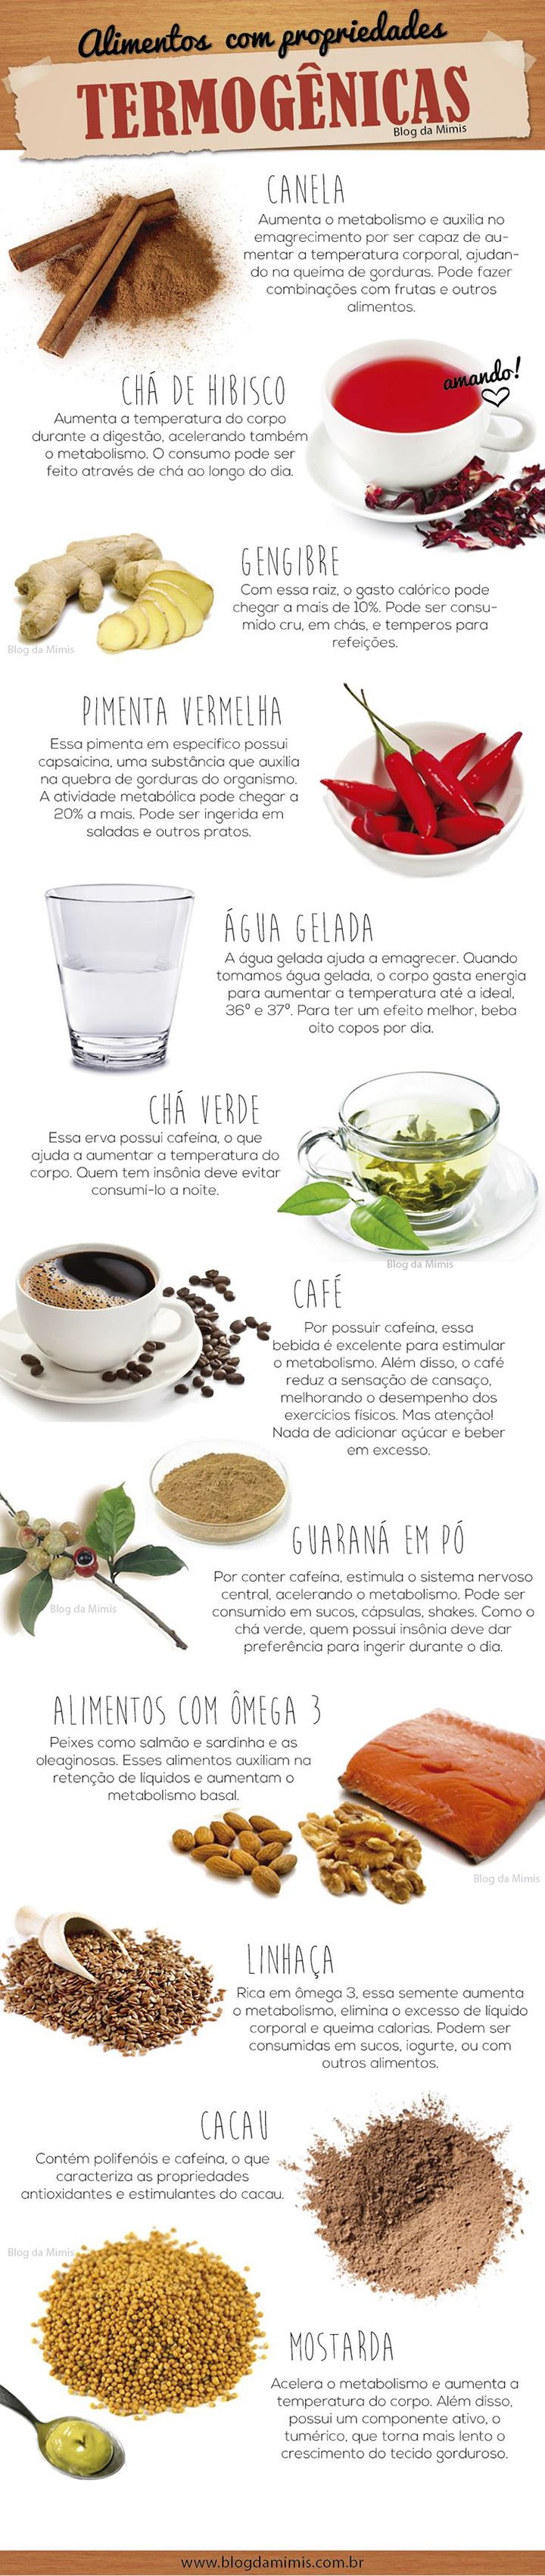 17 best ideas about alimentos para perder peso on - Alimentos para perder peso ...